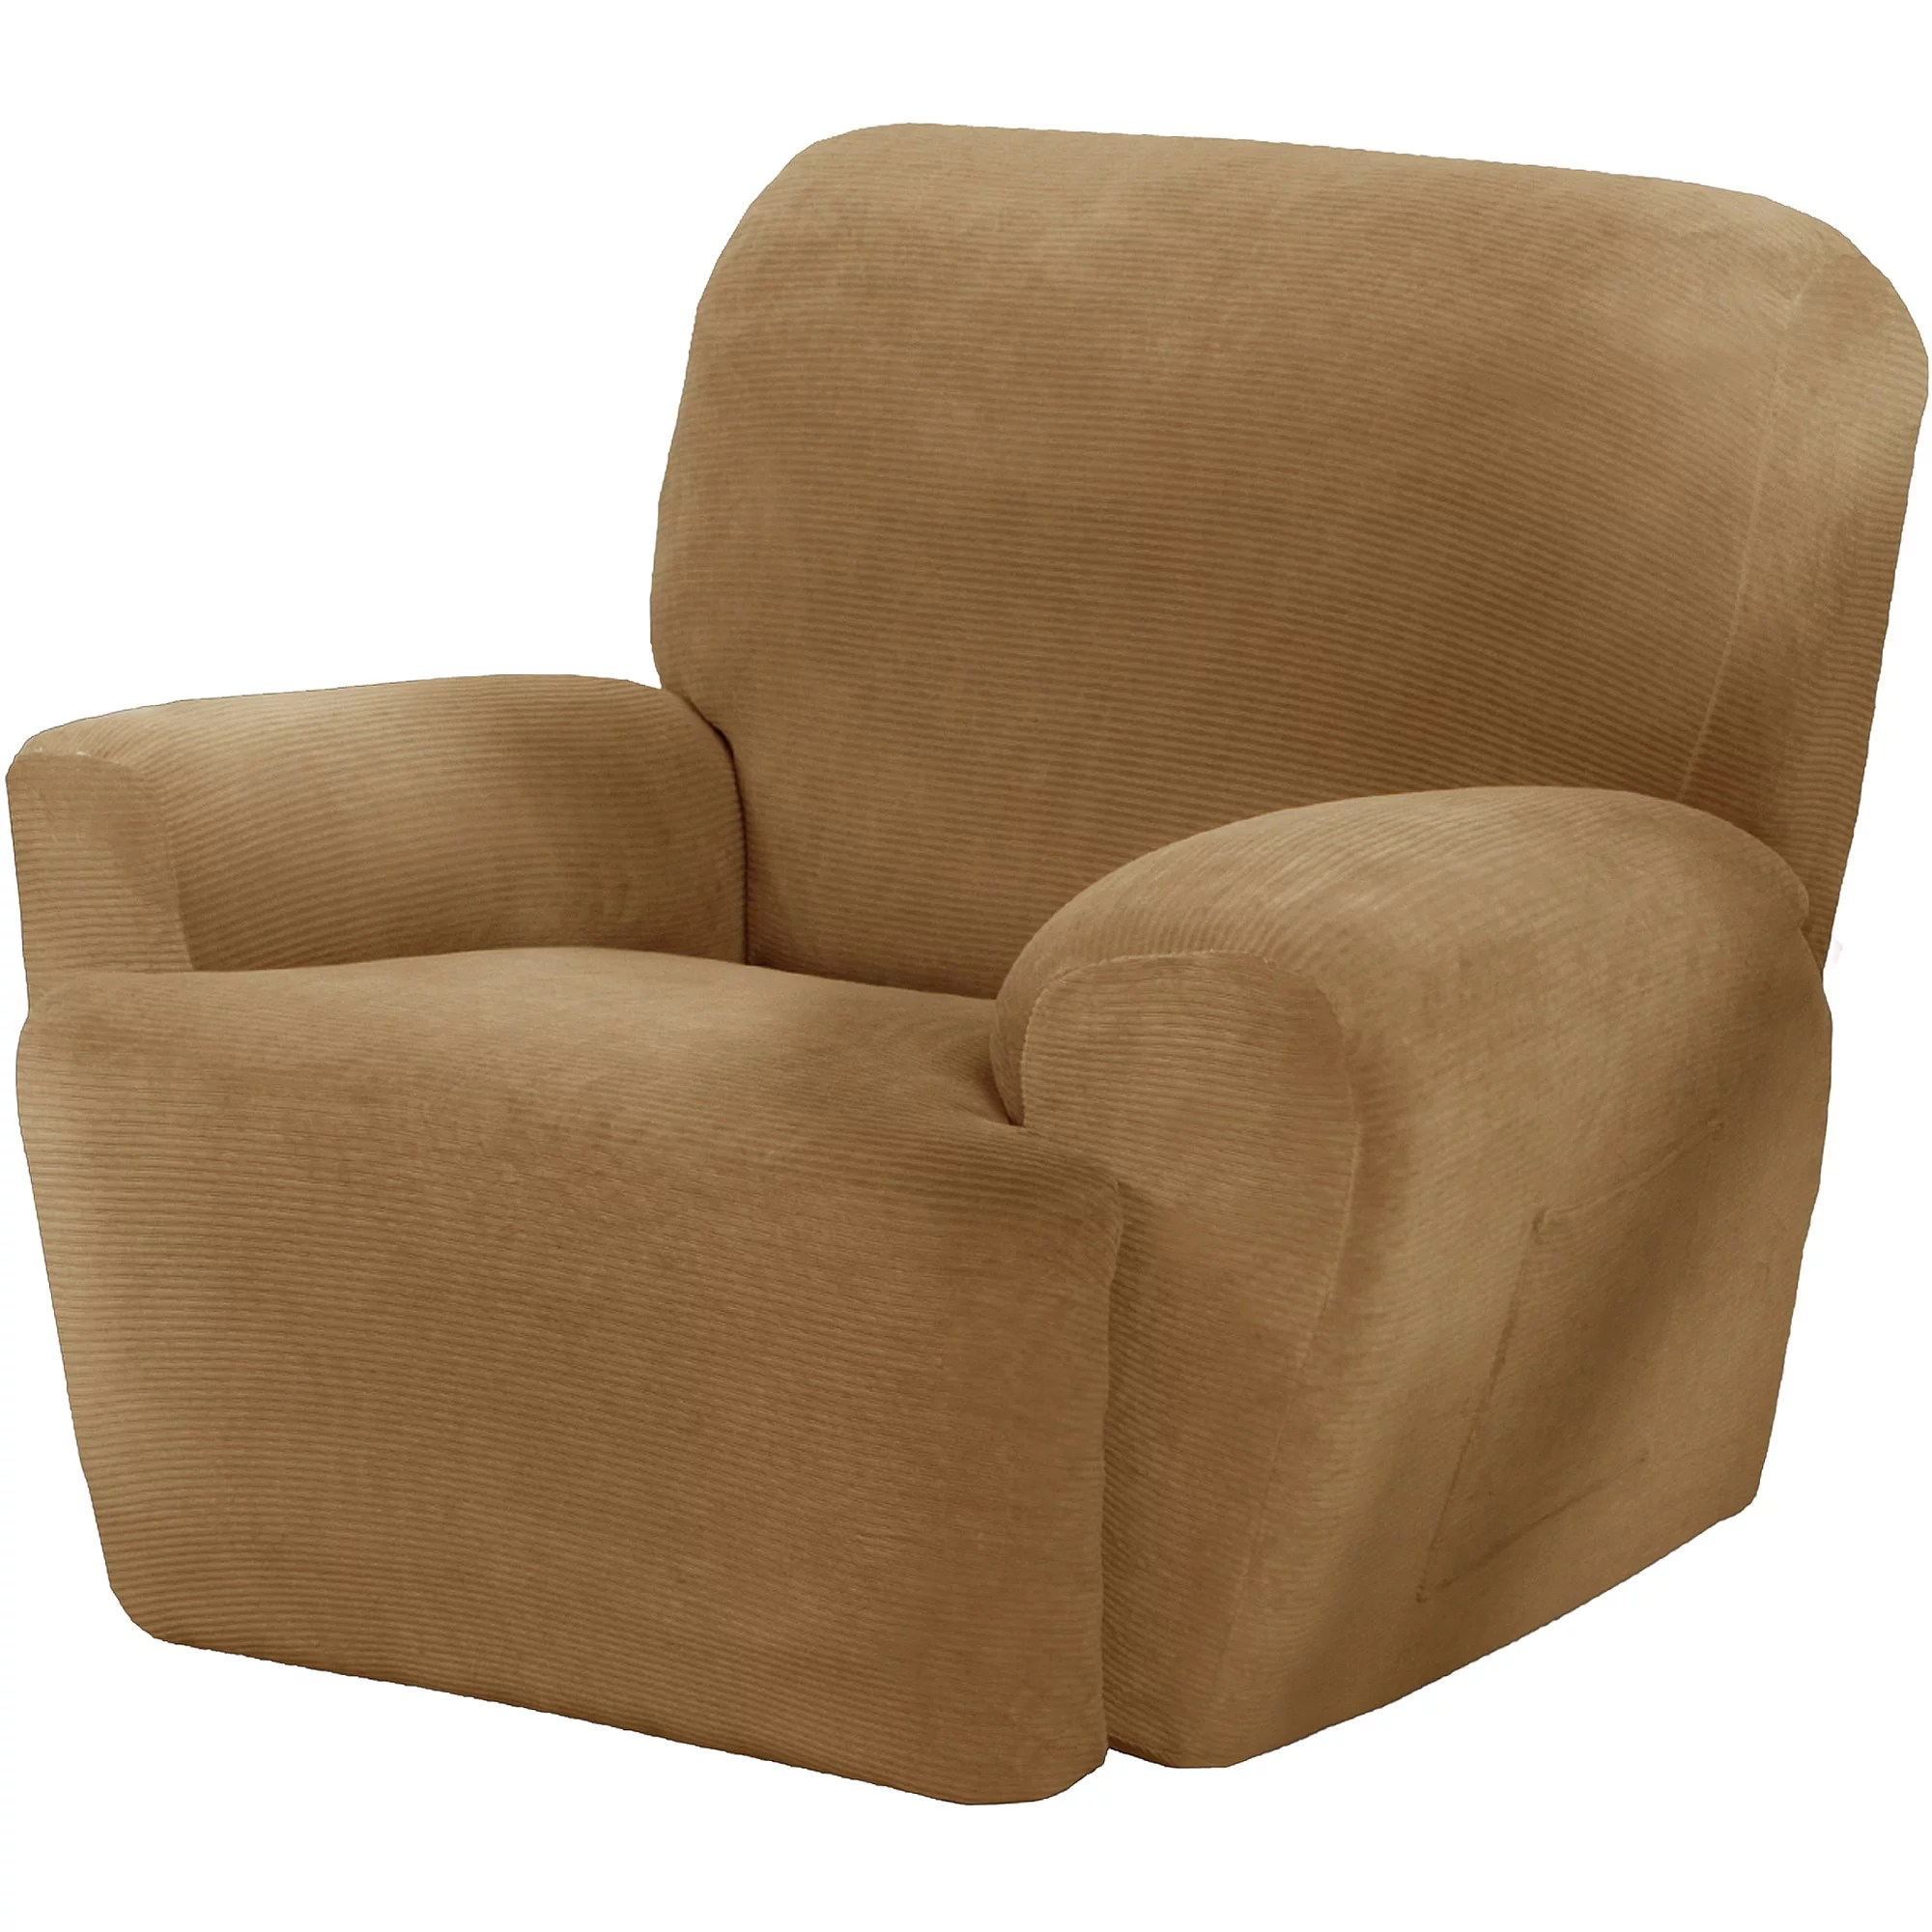 recliner chair covers red upholstered maytex stretch collin 4 piece armchair furniture cover slipcover with side pocket gold walmart com